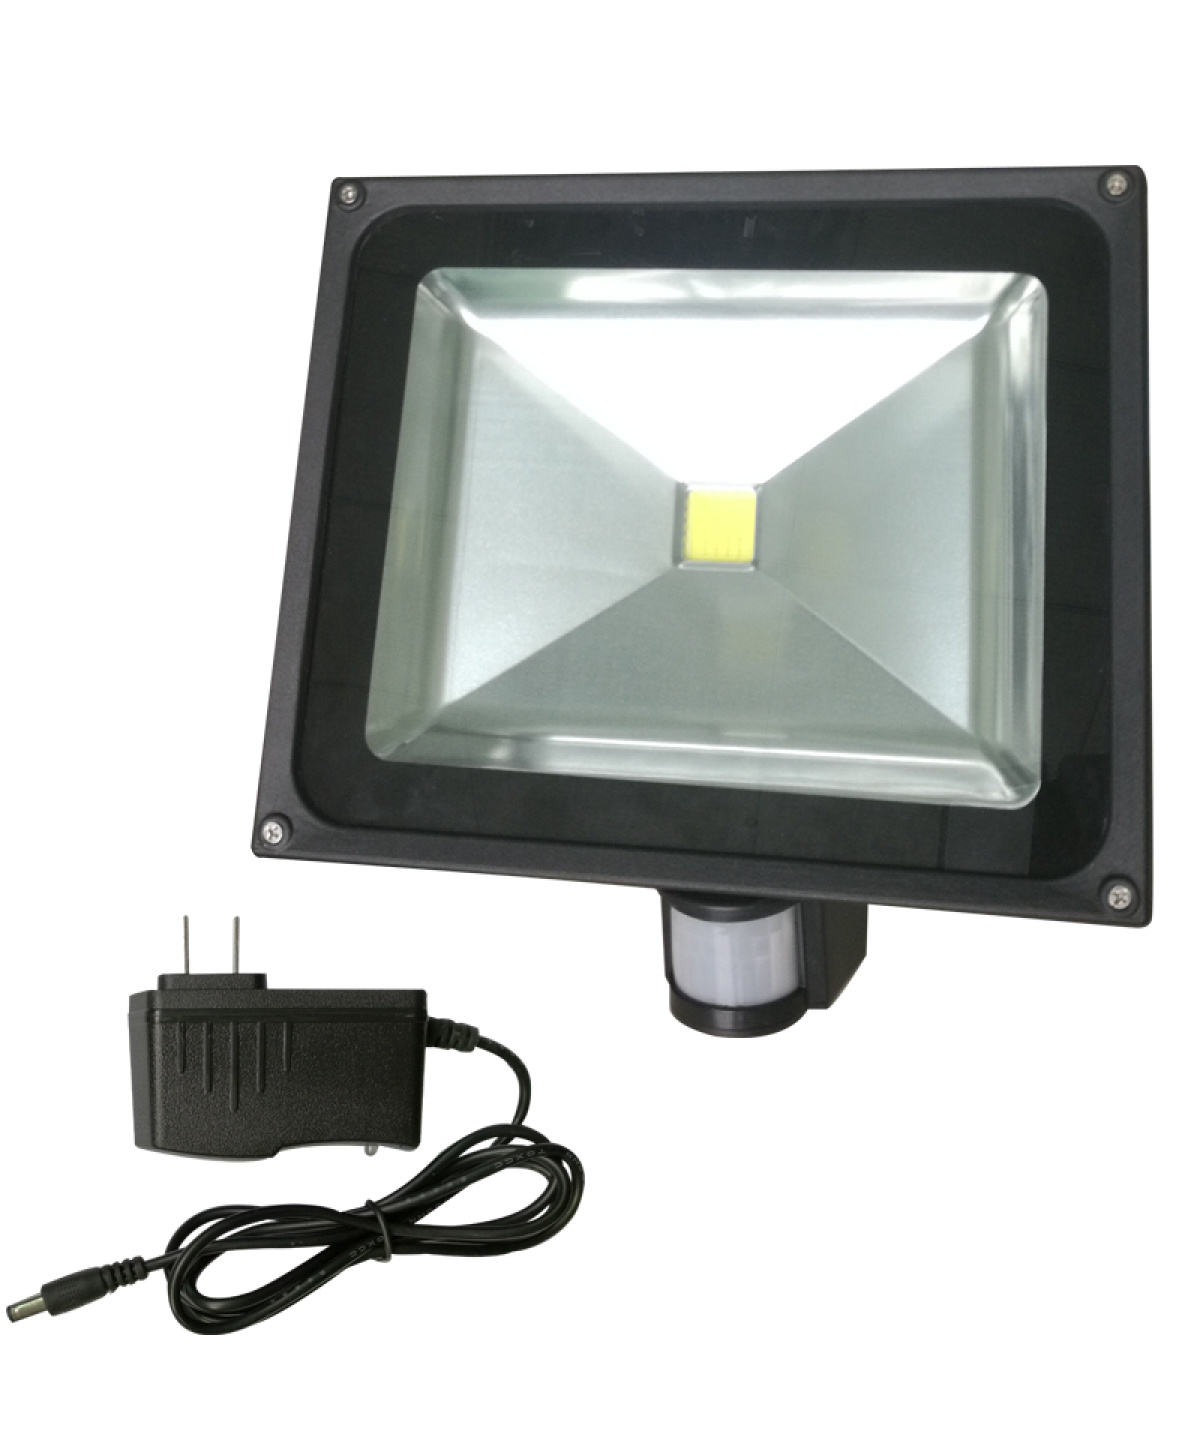 China 12v led Outdoor solar flood light with motion Manufacturers